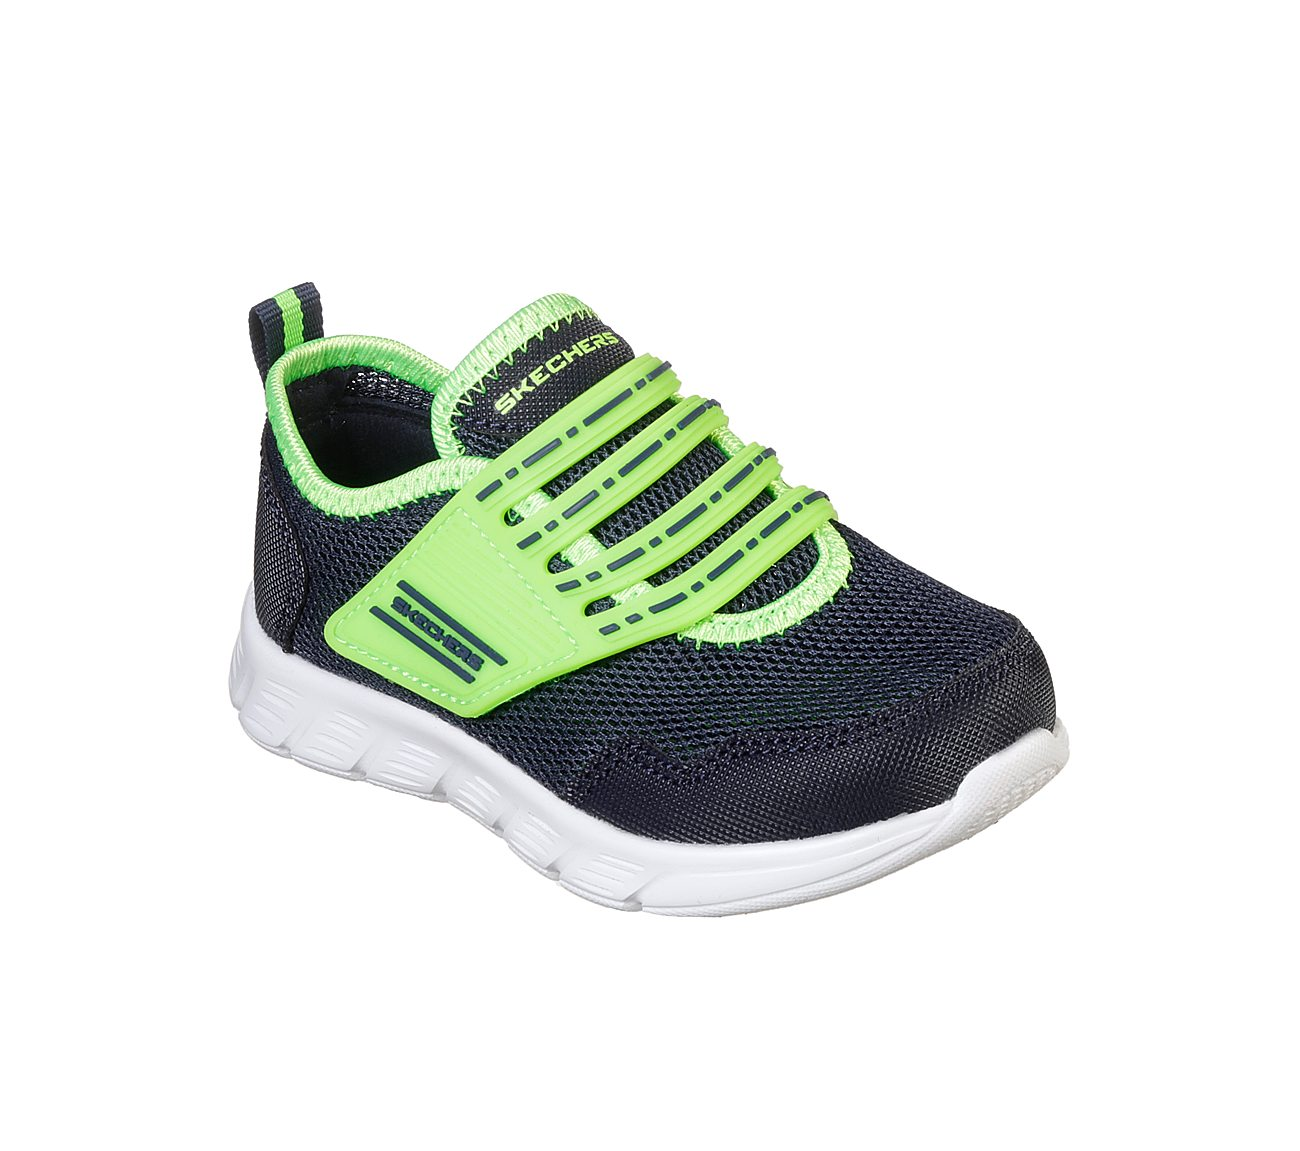 32441b3a256 Buy SKECHERS Comfy Flex SKECHERS USA Shoes only £29.00